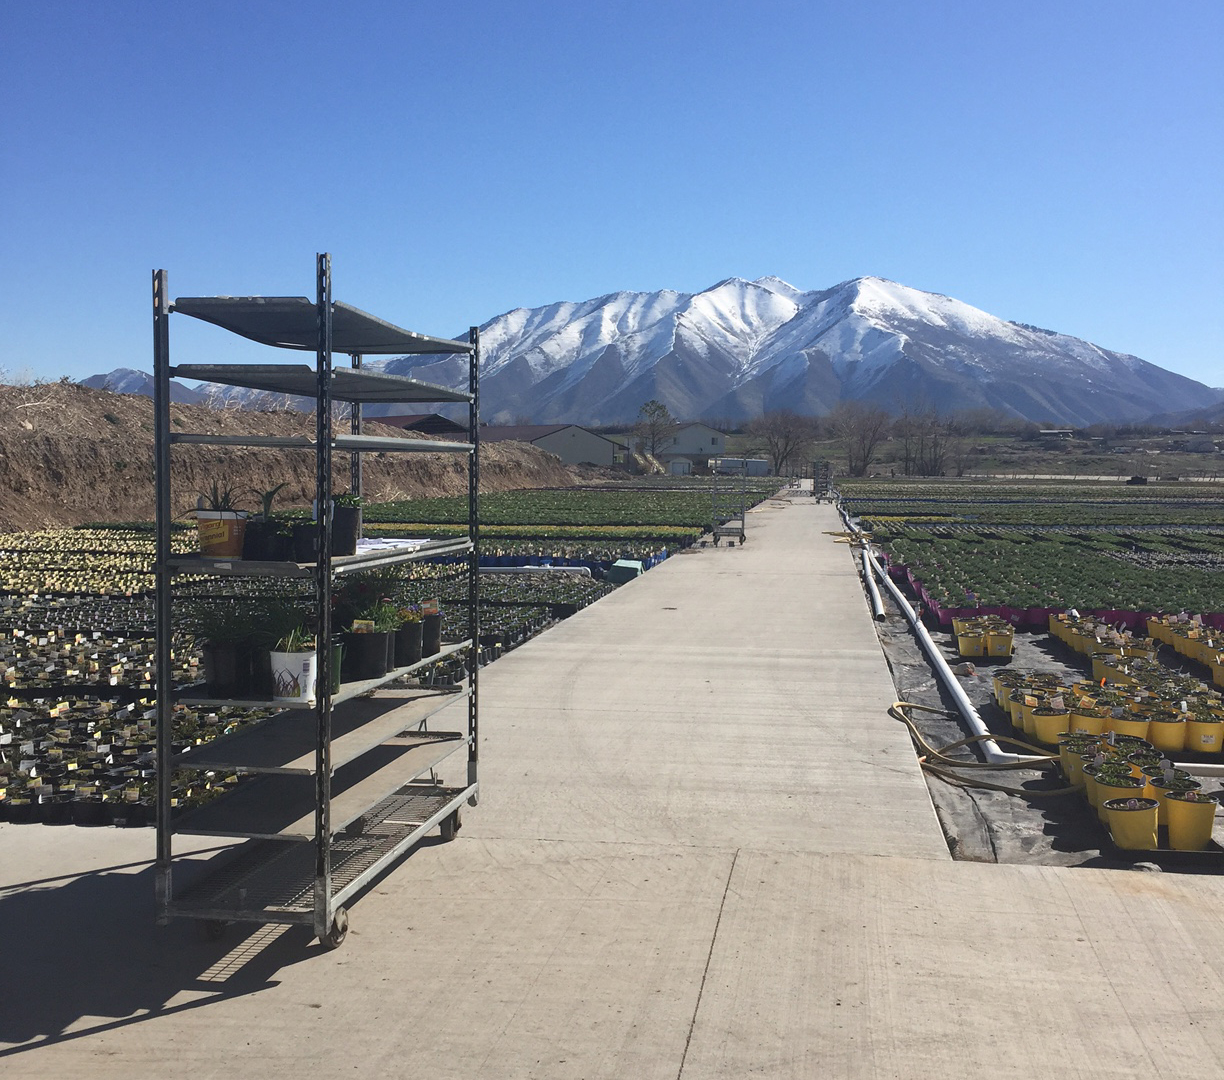 As we mentioned above, John and Jill Hoffman visited the Salem, Utah location of Olson's Greenhouse of Colorado to pick up plants for the ID competition. Huge thanks to Olson's for providing the plant material and to Matt Carr for pulling the plants.